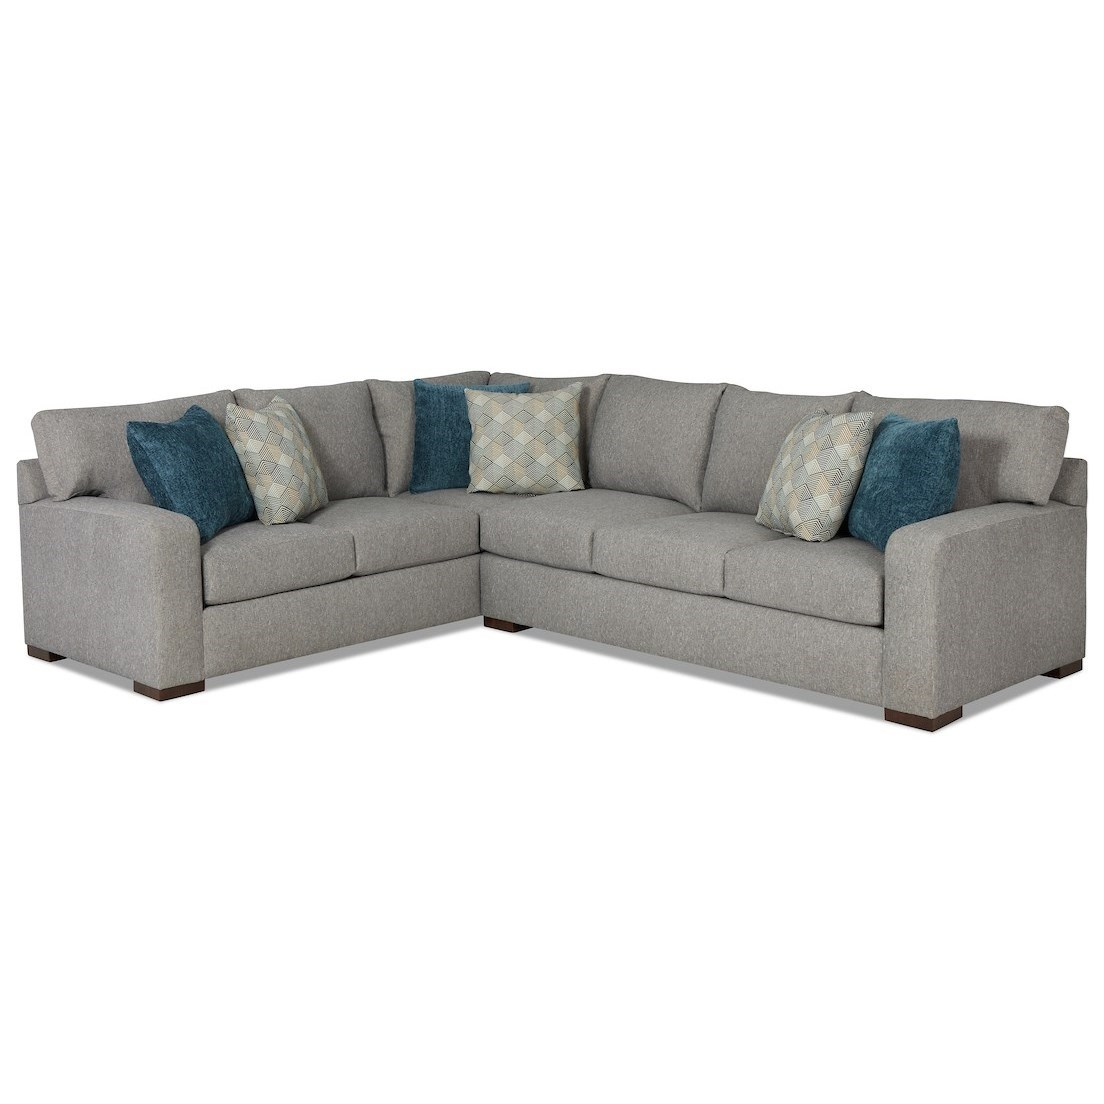 Pace 5-Seat Sectional Sofa w/ RAF Sofa by Klaussner at Johnny Janosik